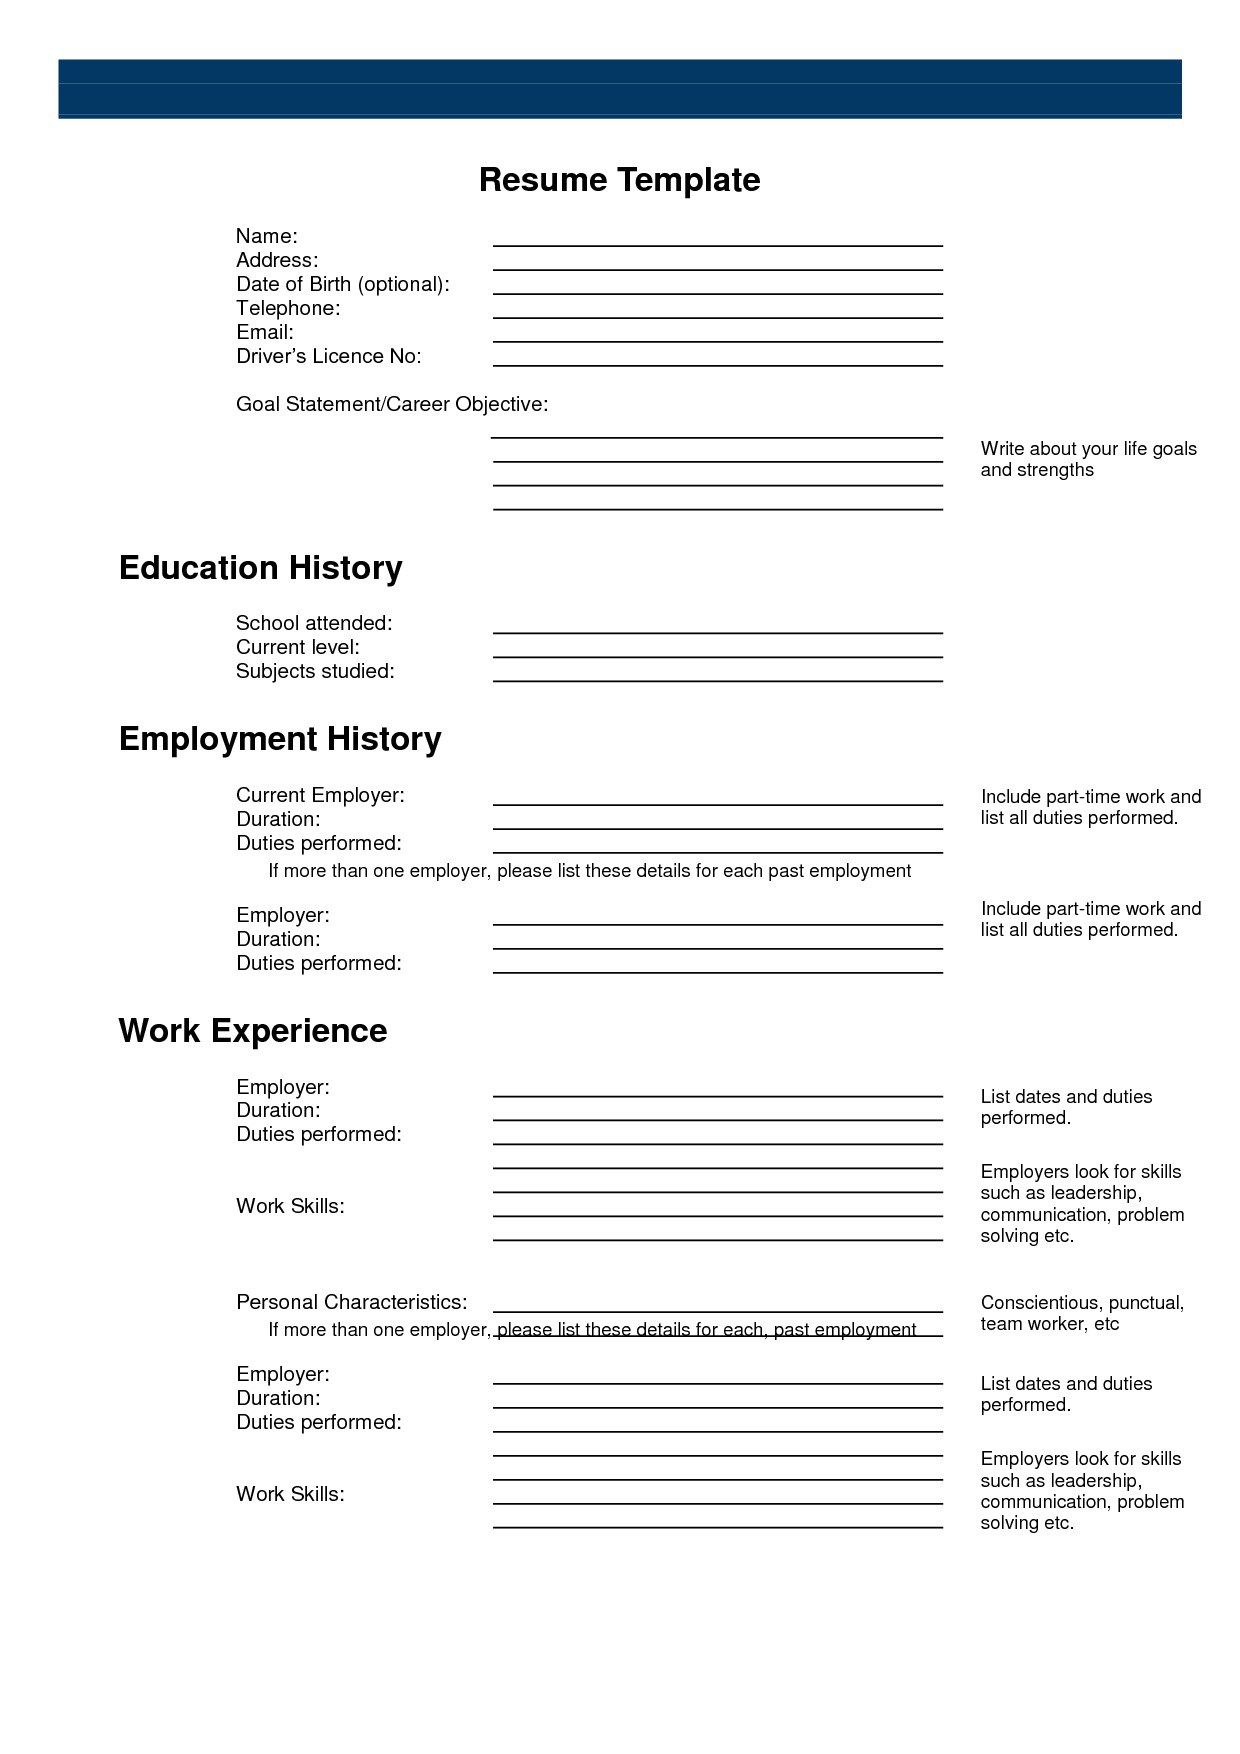 Fill In The Blank Resume Printable Falep Midnightpig Co With Free Printable Resume Templates Microsoft Word Curriculum Vitae Apper